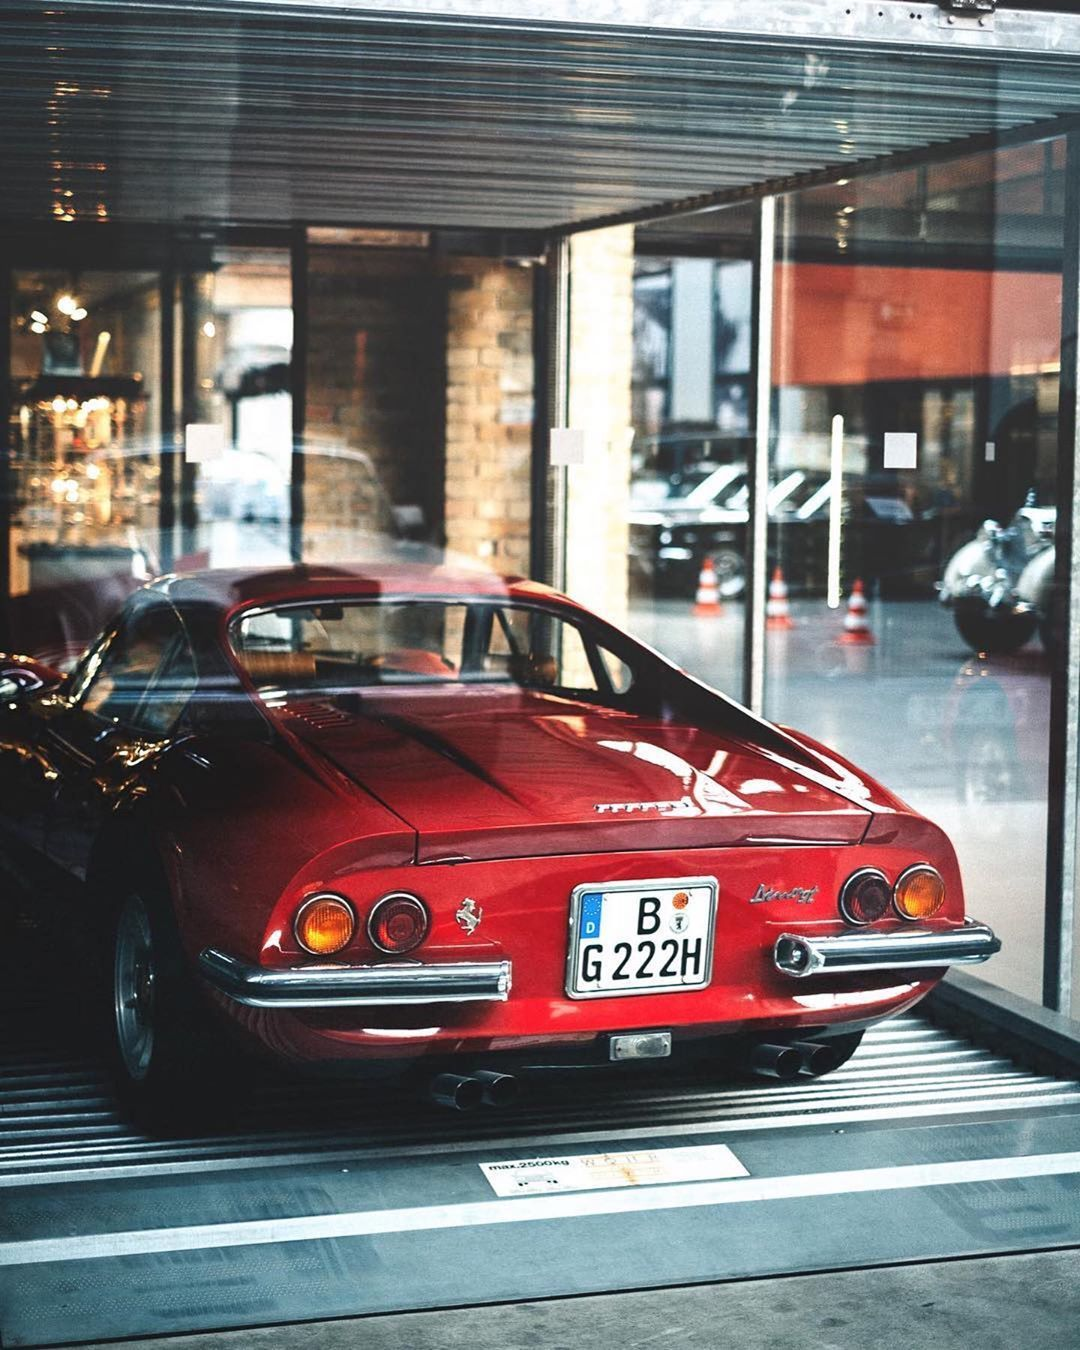 Car The Berbant On Instagram Seen Through The Glass Lichtistalles Theberbant Backrealcars Car In 2020 Sports Cars Ferrari Car Vintage Racing